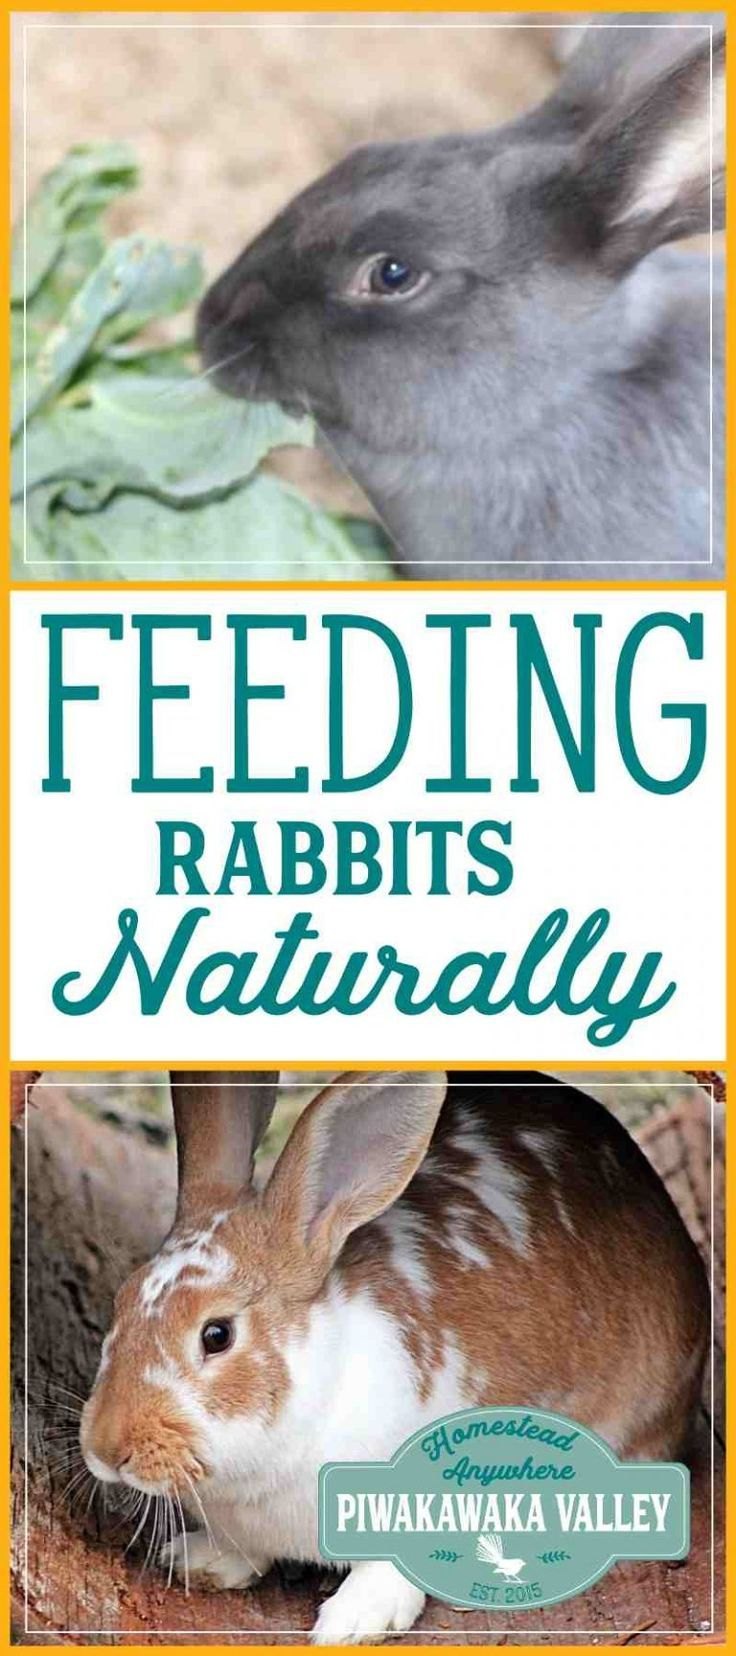 Safe foods for rabbits a comprehensive list for feeding your rabbits with out using pellets. #rabbits #meatrabbits #homestead